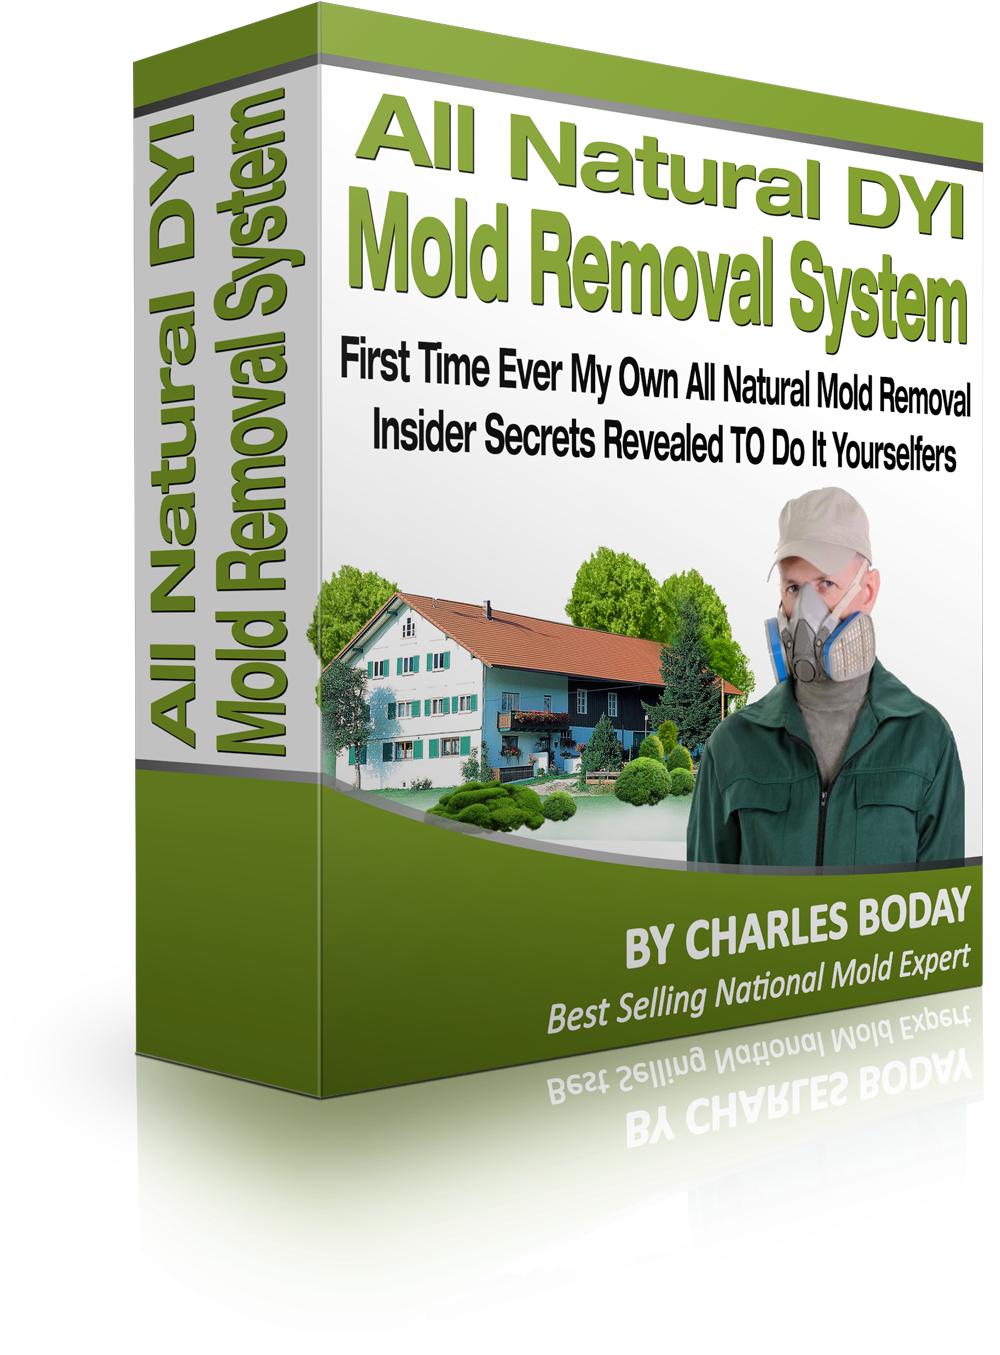 Chapter 2 mold in attic safe atticcrawlspacebasement mold chapter 2 mold in attic safe atticcrawlspacebasement mold removal call now 1 800 9484947 solutioingenieria Choice Image